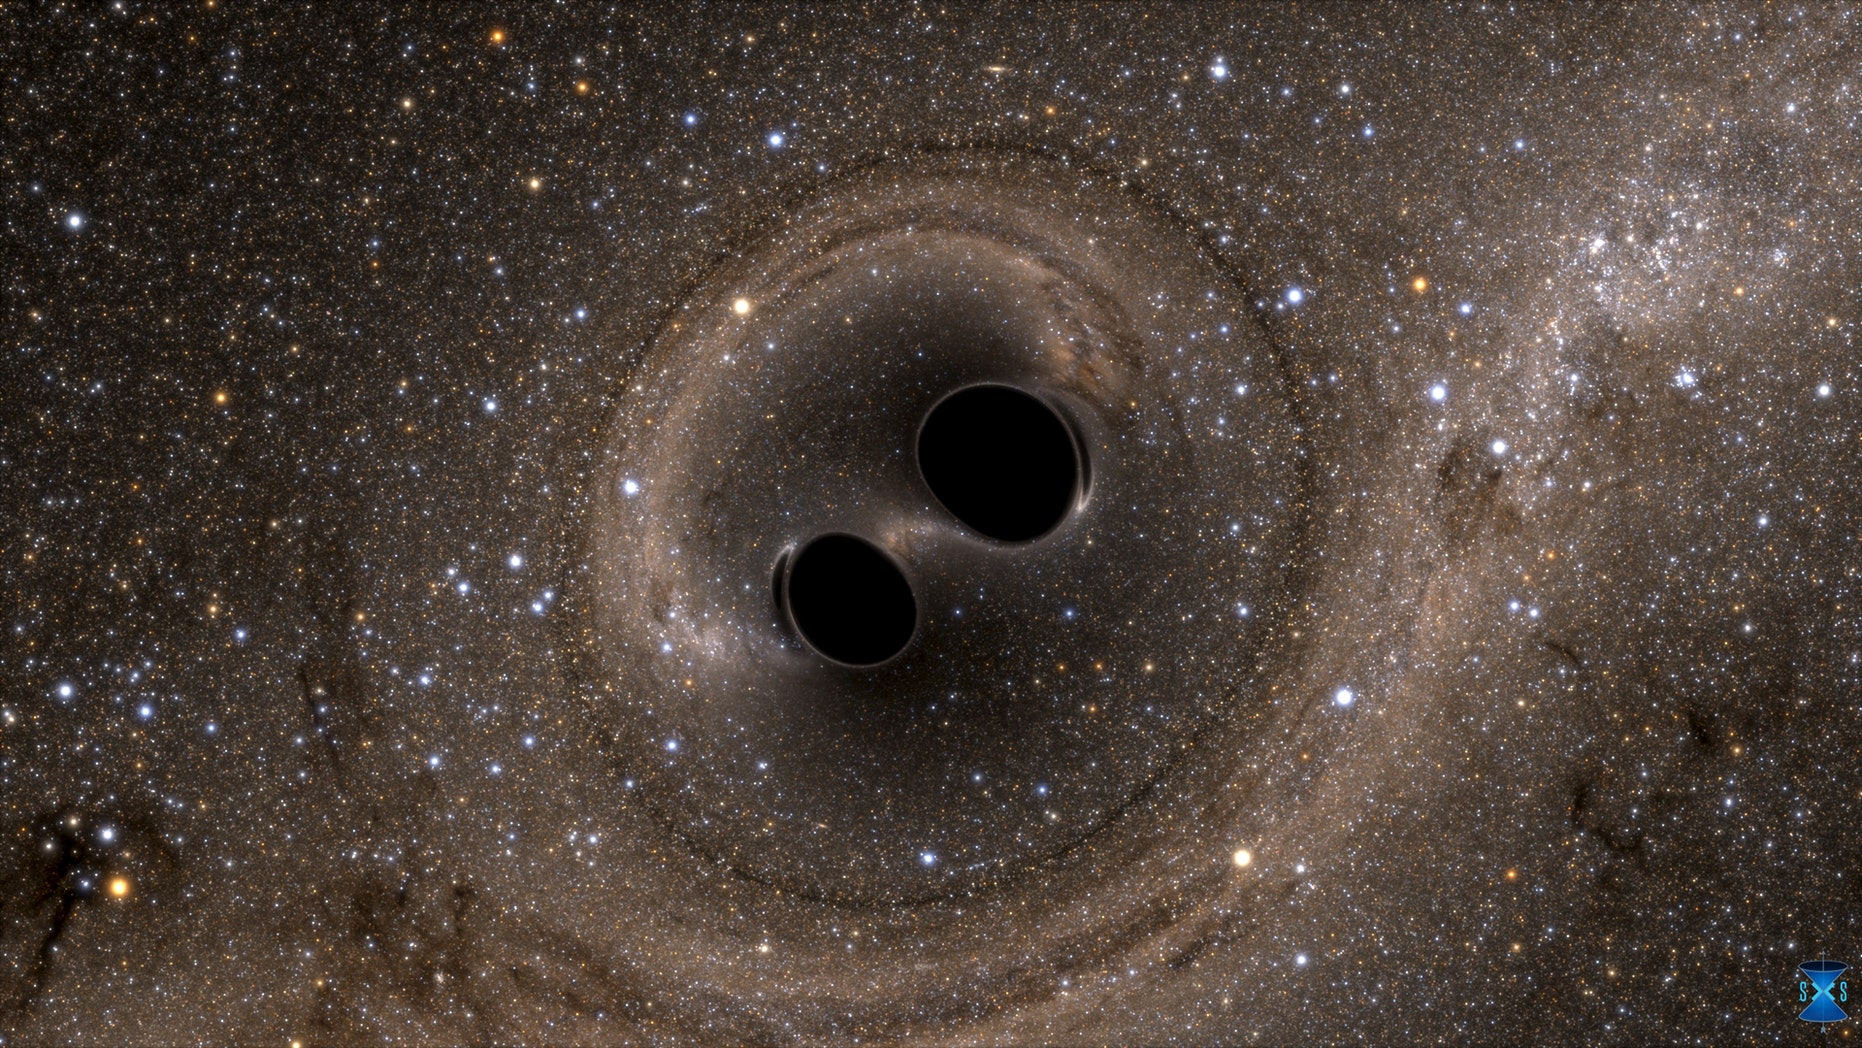 File photo: The collision of two black holes - a tremendously powerful event detected for the first time ever by the Laser Interferometer Gravitational-Wave Observatory, or LIGO - is seen in this still image from a computer simulation released in Washington February 11, 2016. REUTERS/The SXS (Simulating eXtreme Spacetimes)